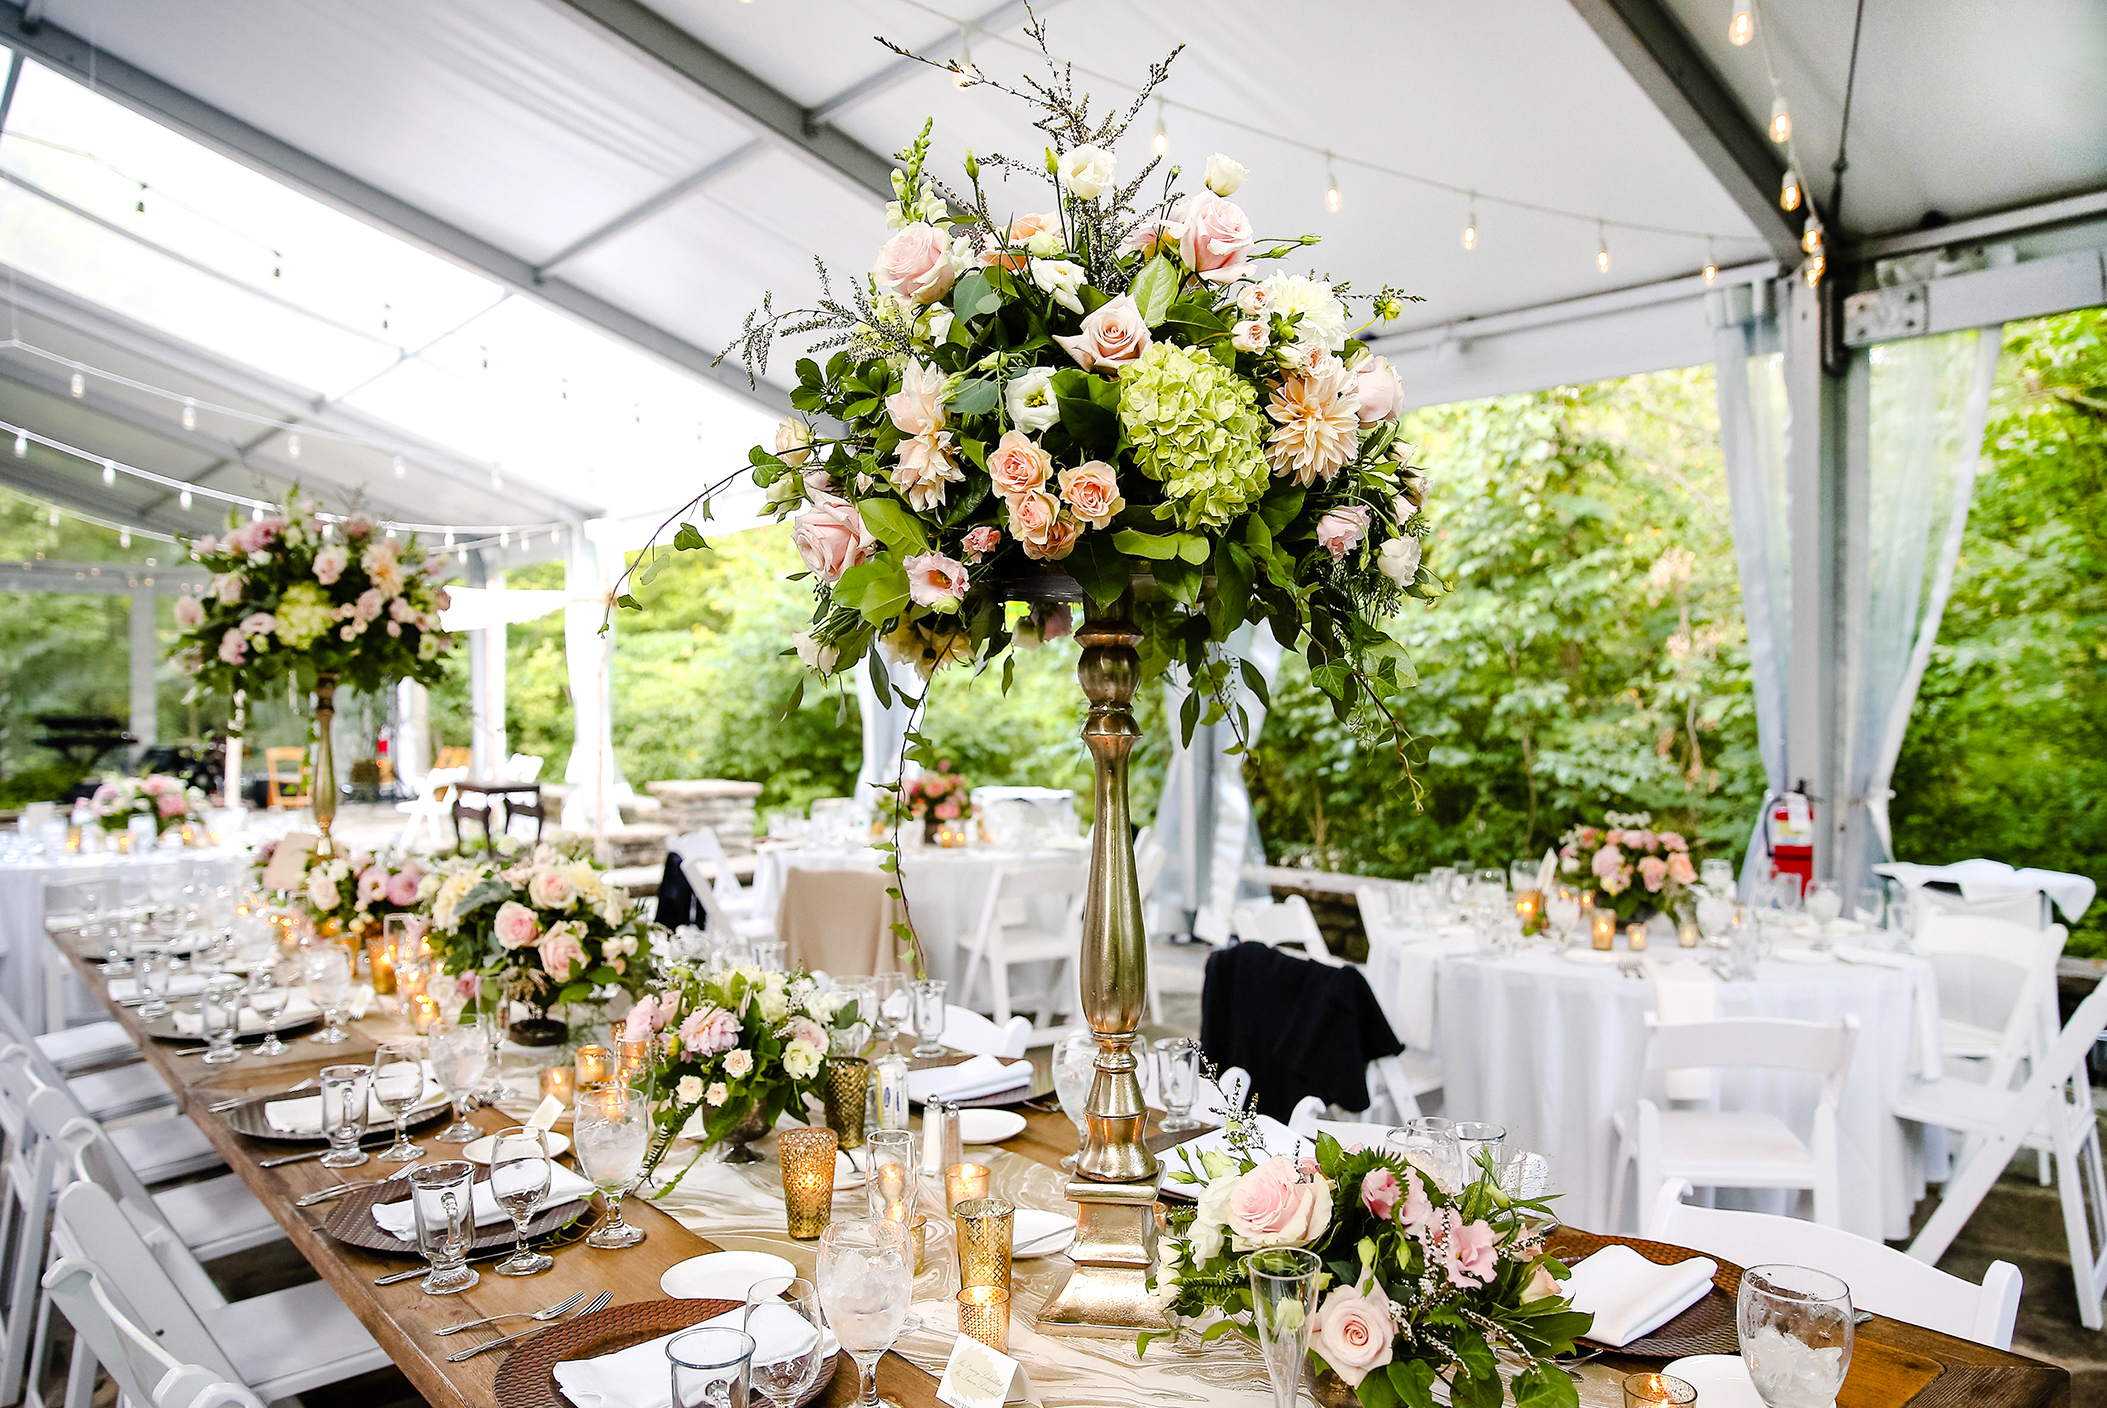 Outdoor wedding reception tables filled with fresh flower centerpieces